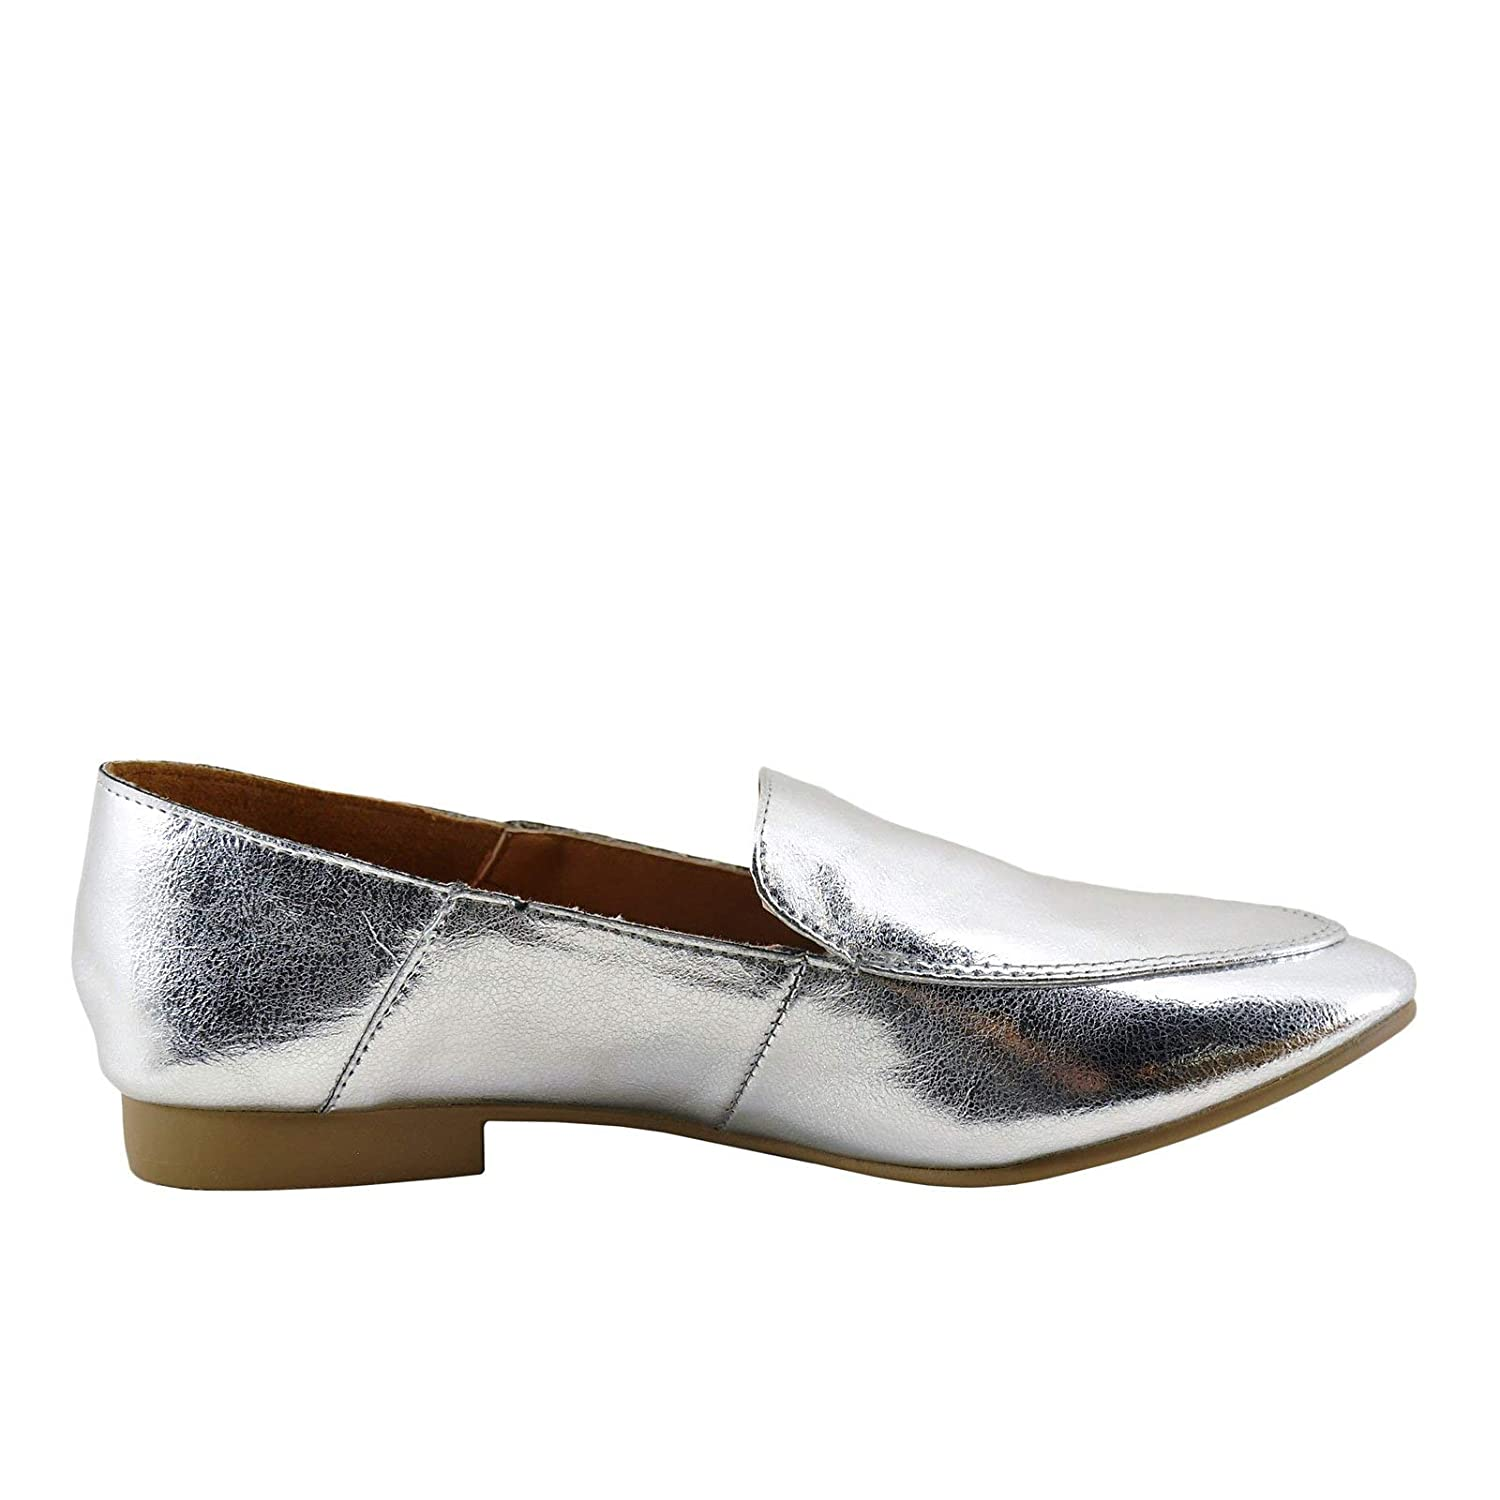 6, Silver GENX Women Synthetic Slip On Low Height Loafer Regent-04